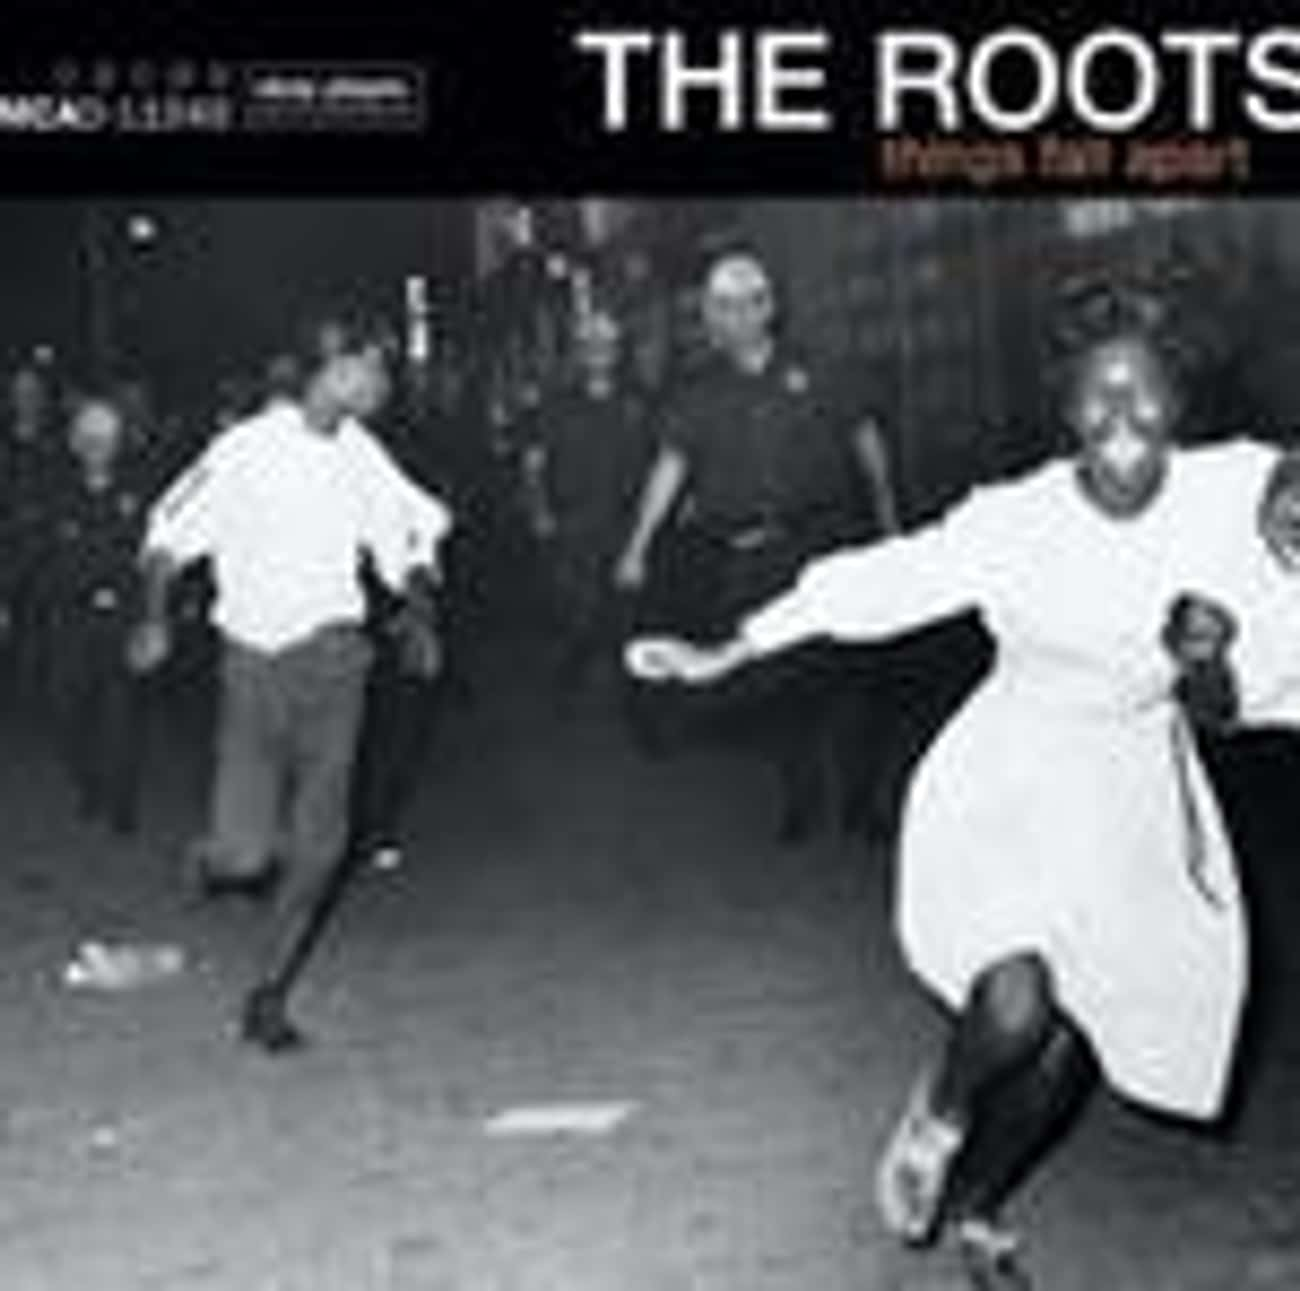 Things Fall Apart is listed (or ranked) 1 on the list The Best Roots Albums of All Time